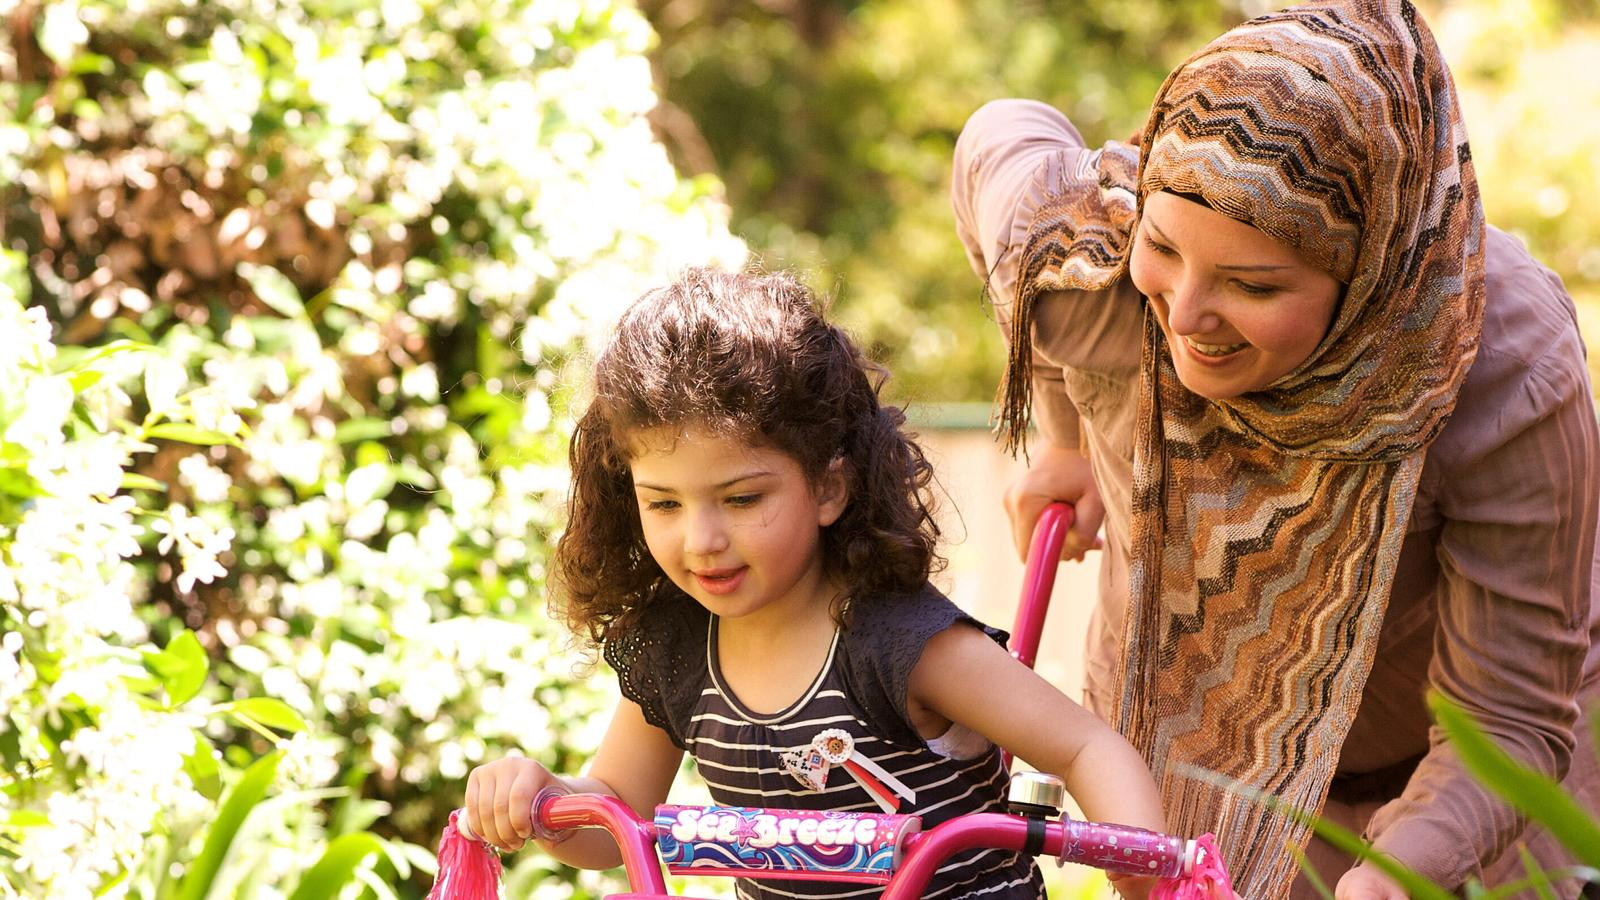 A mother teaching her daughter how to ride a bike